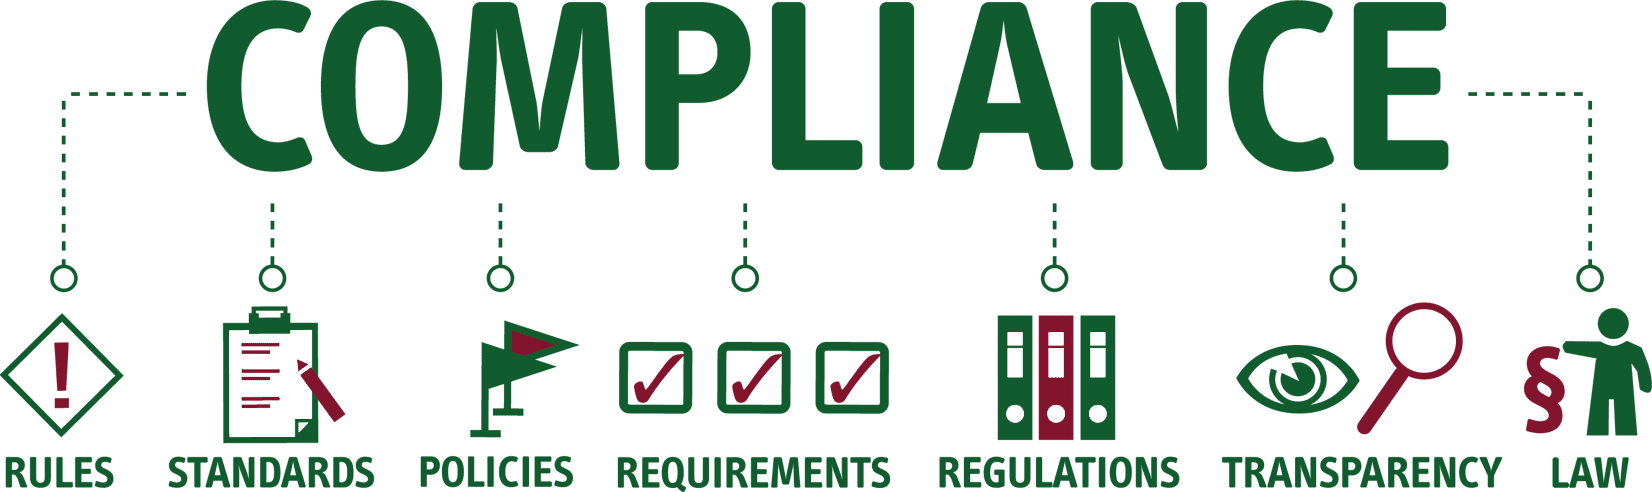 Help2Comply-compliance